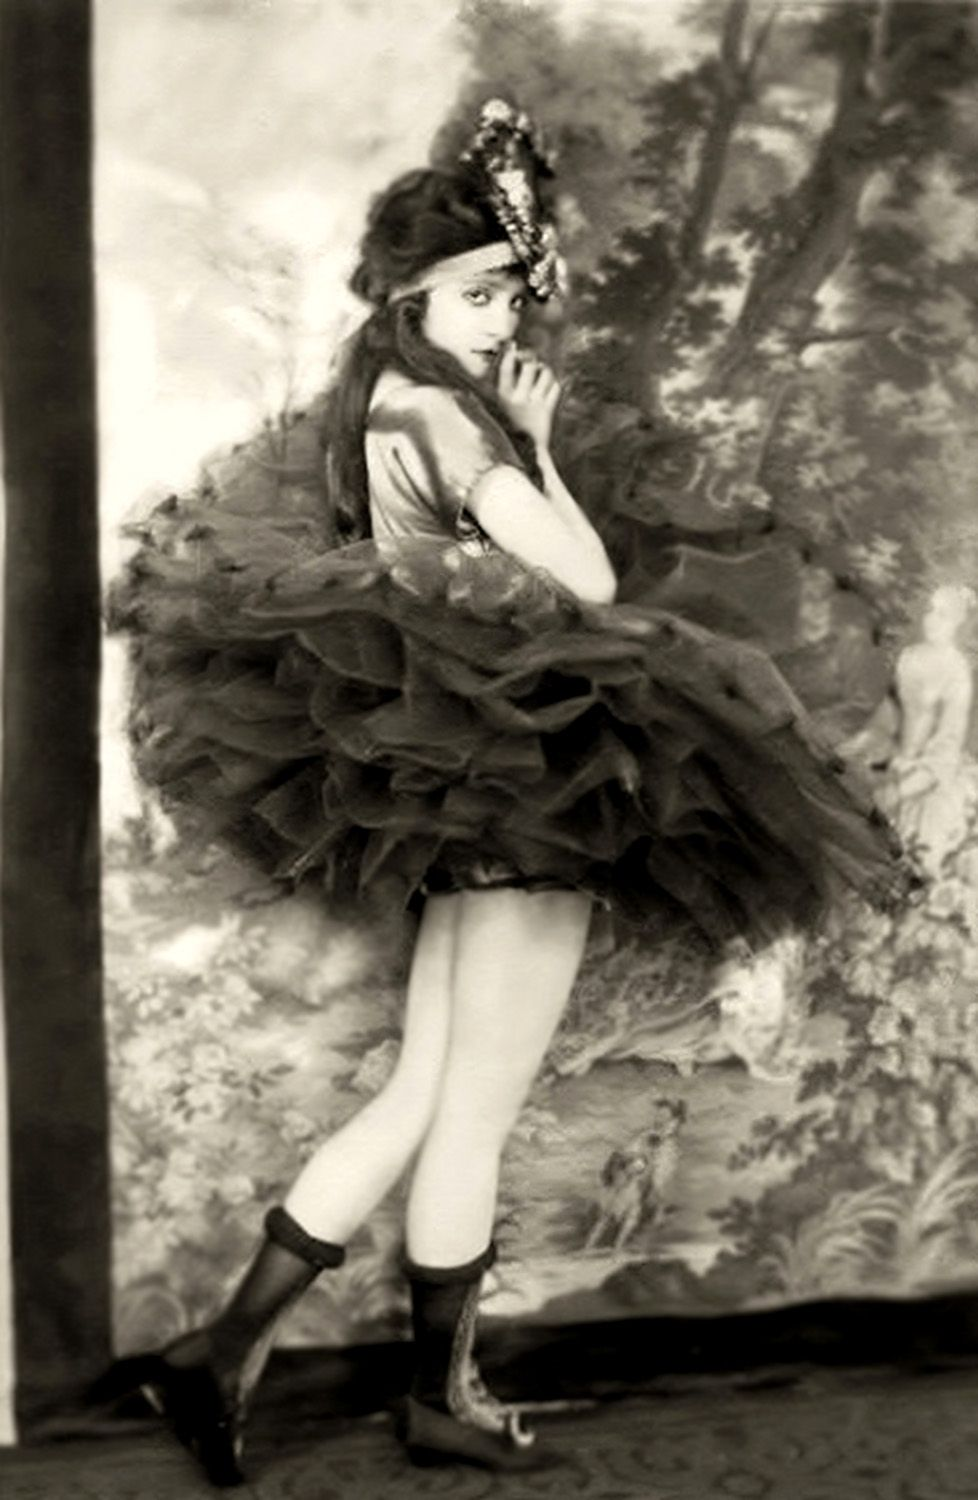 Ziegfeld Girl photographed by Alfred Cheney Johnston